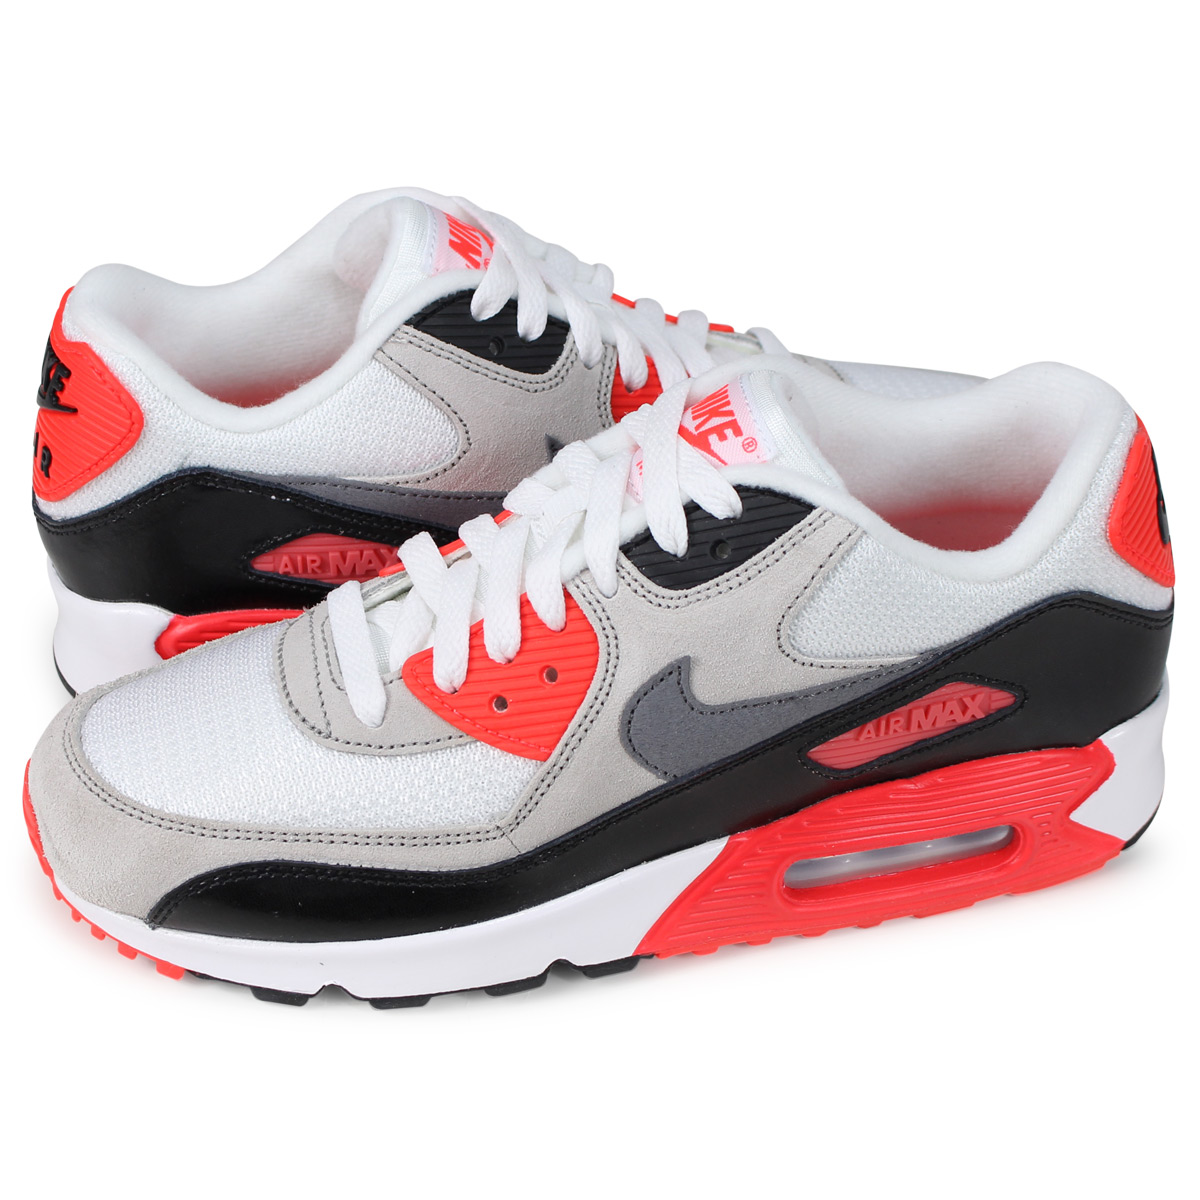 Nike NIKE Air Max 90 Lady's sneakers AIR MAX 90 PREMIUM MESH GS white 724,882 100